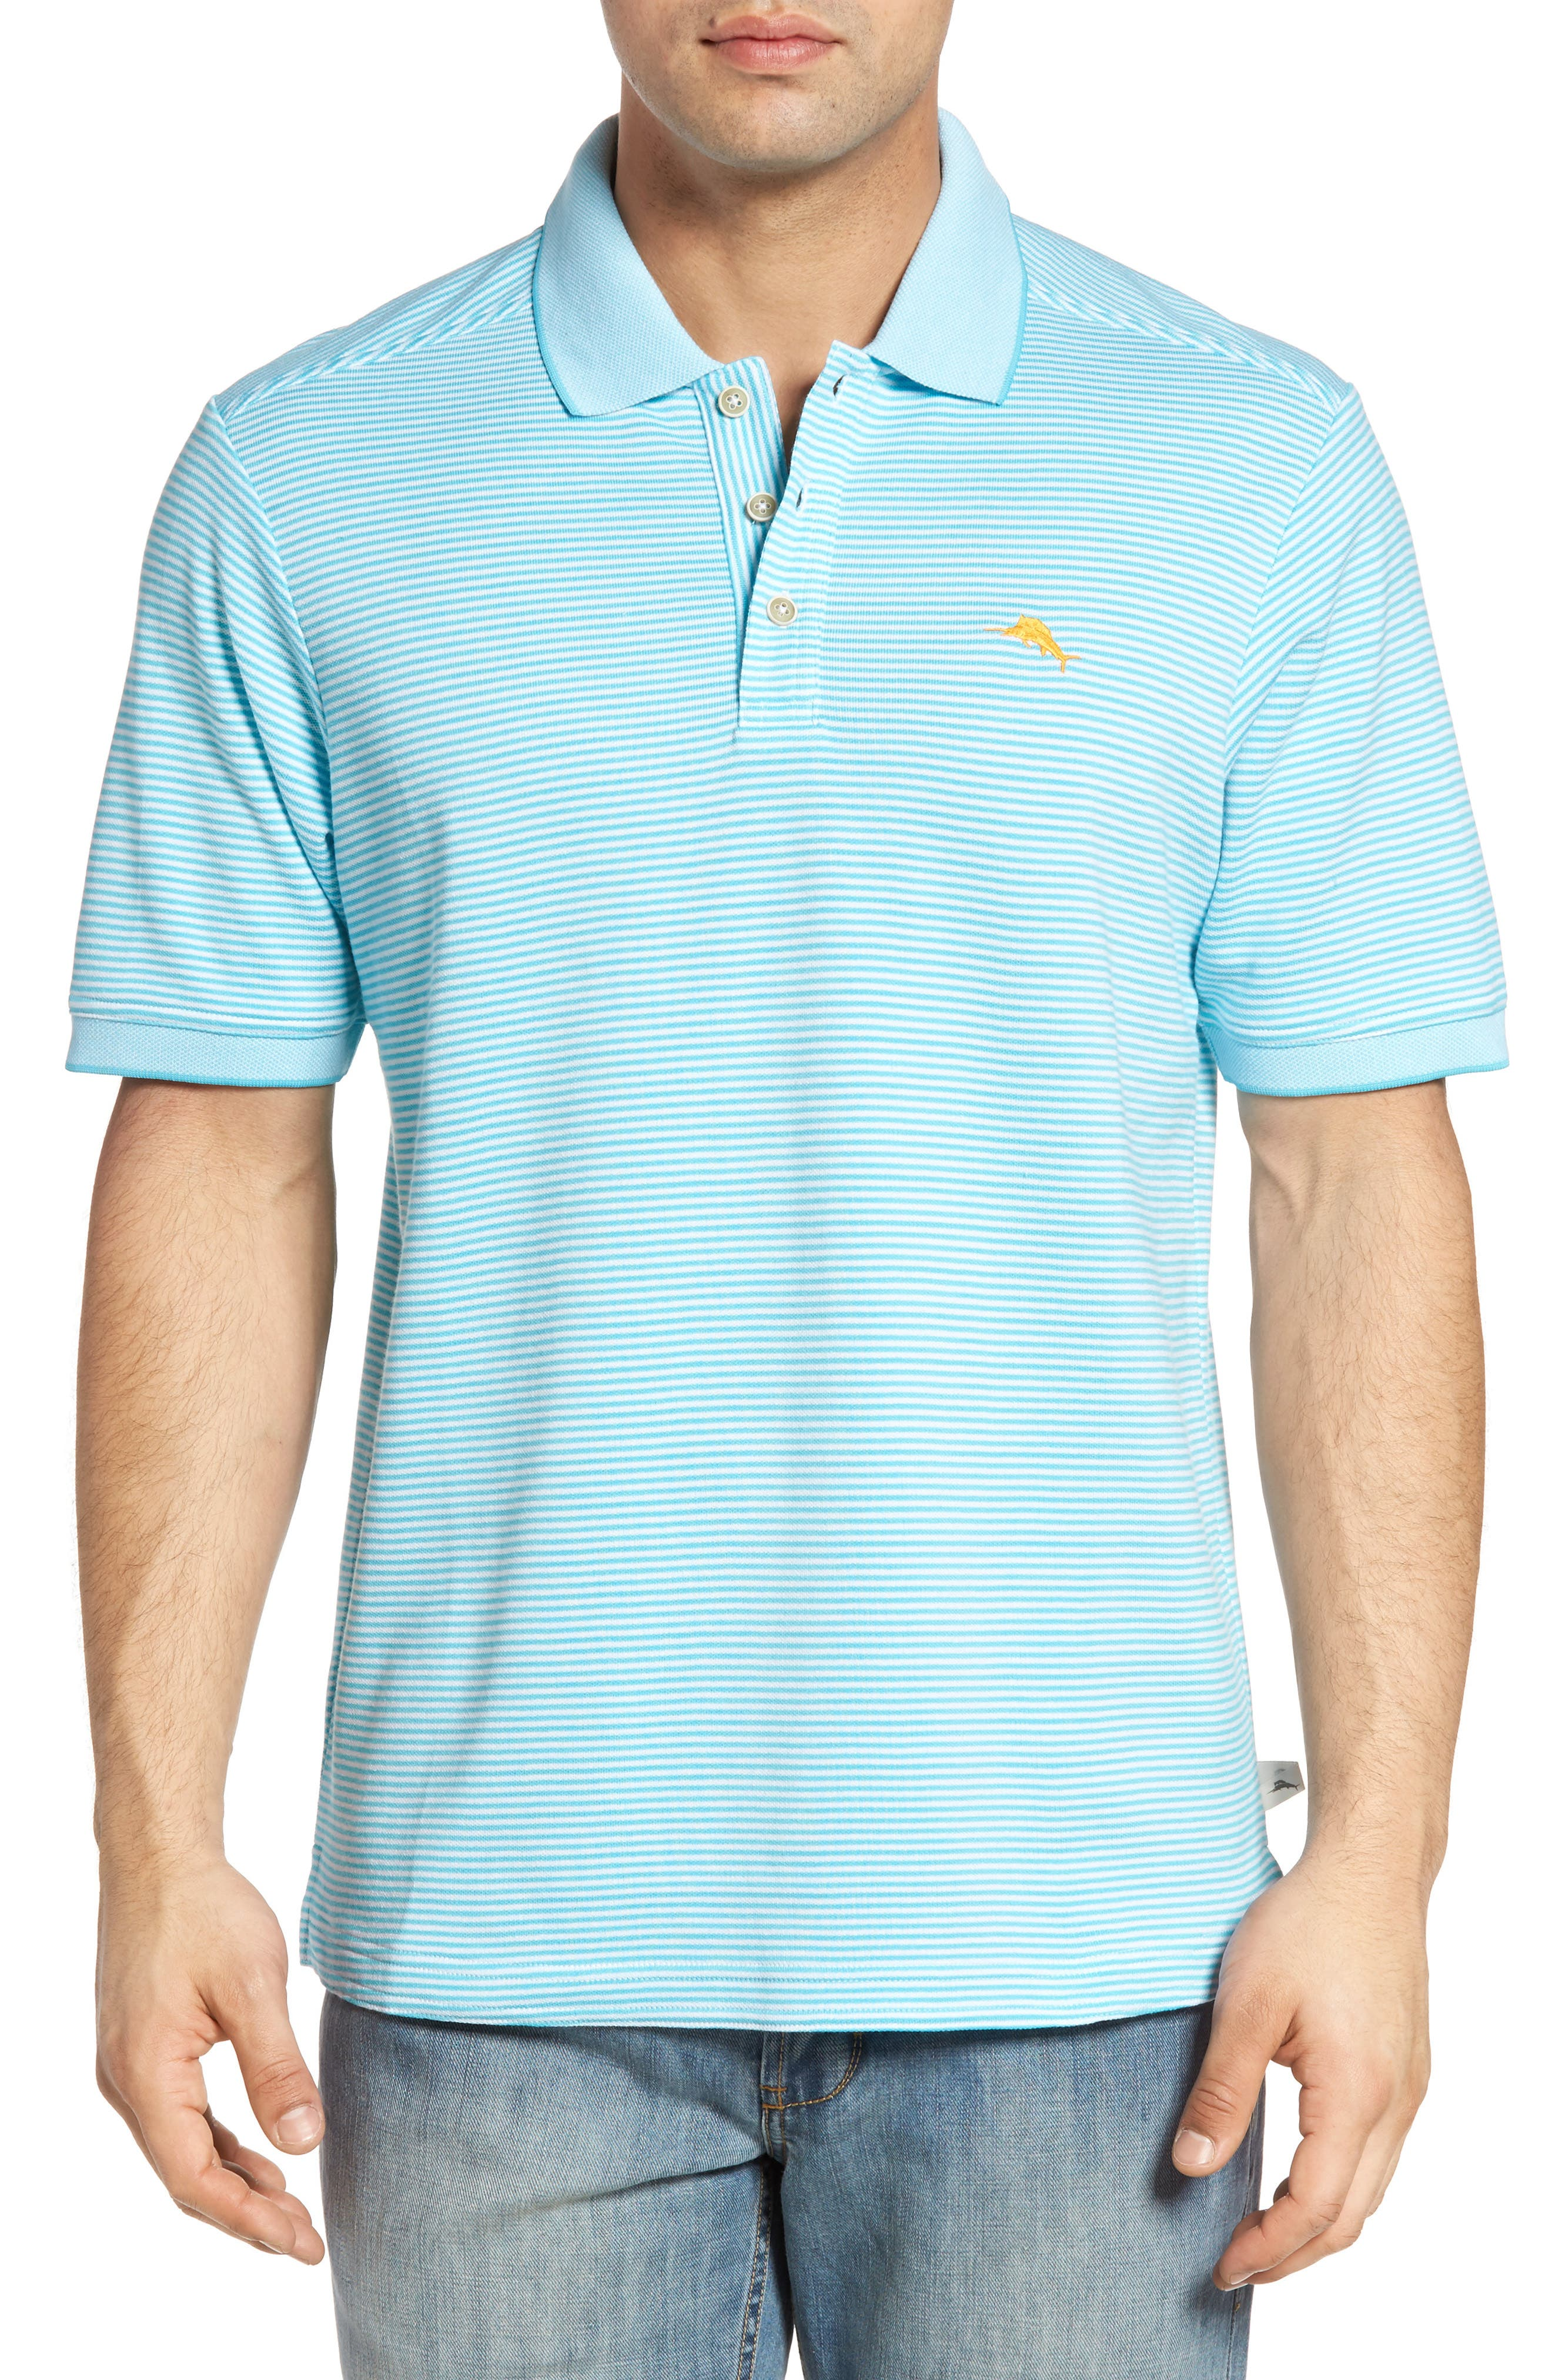 TOMMY BAHAMA Emfielder Stripe Pima Cotton Blend Polo